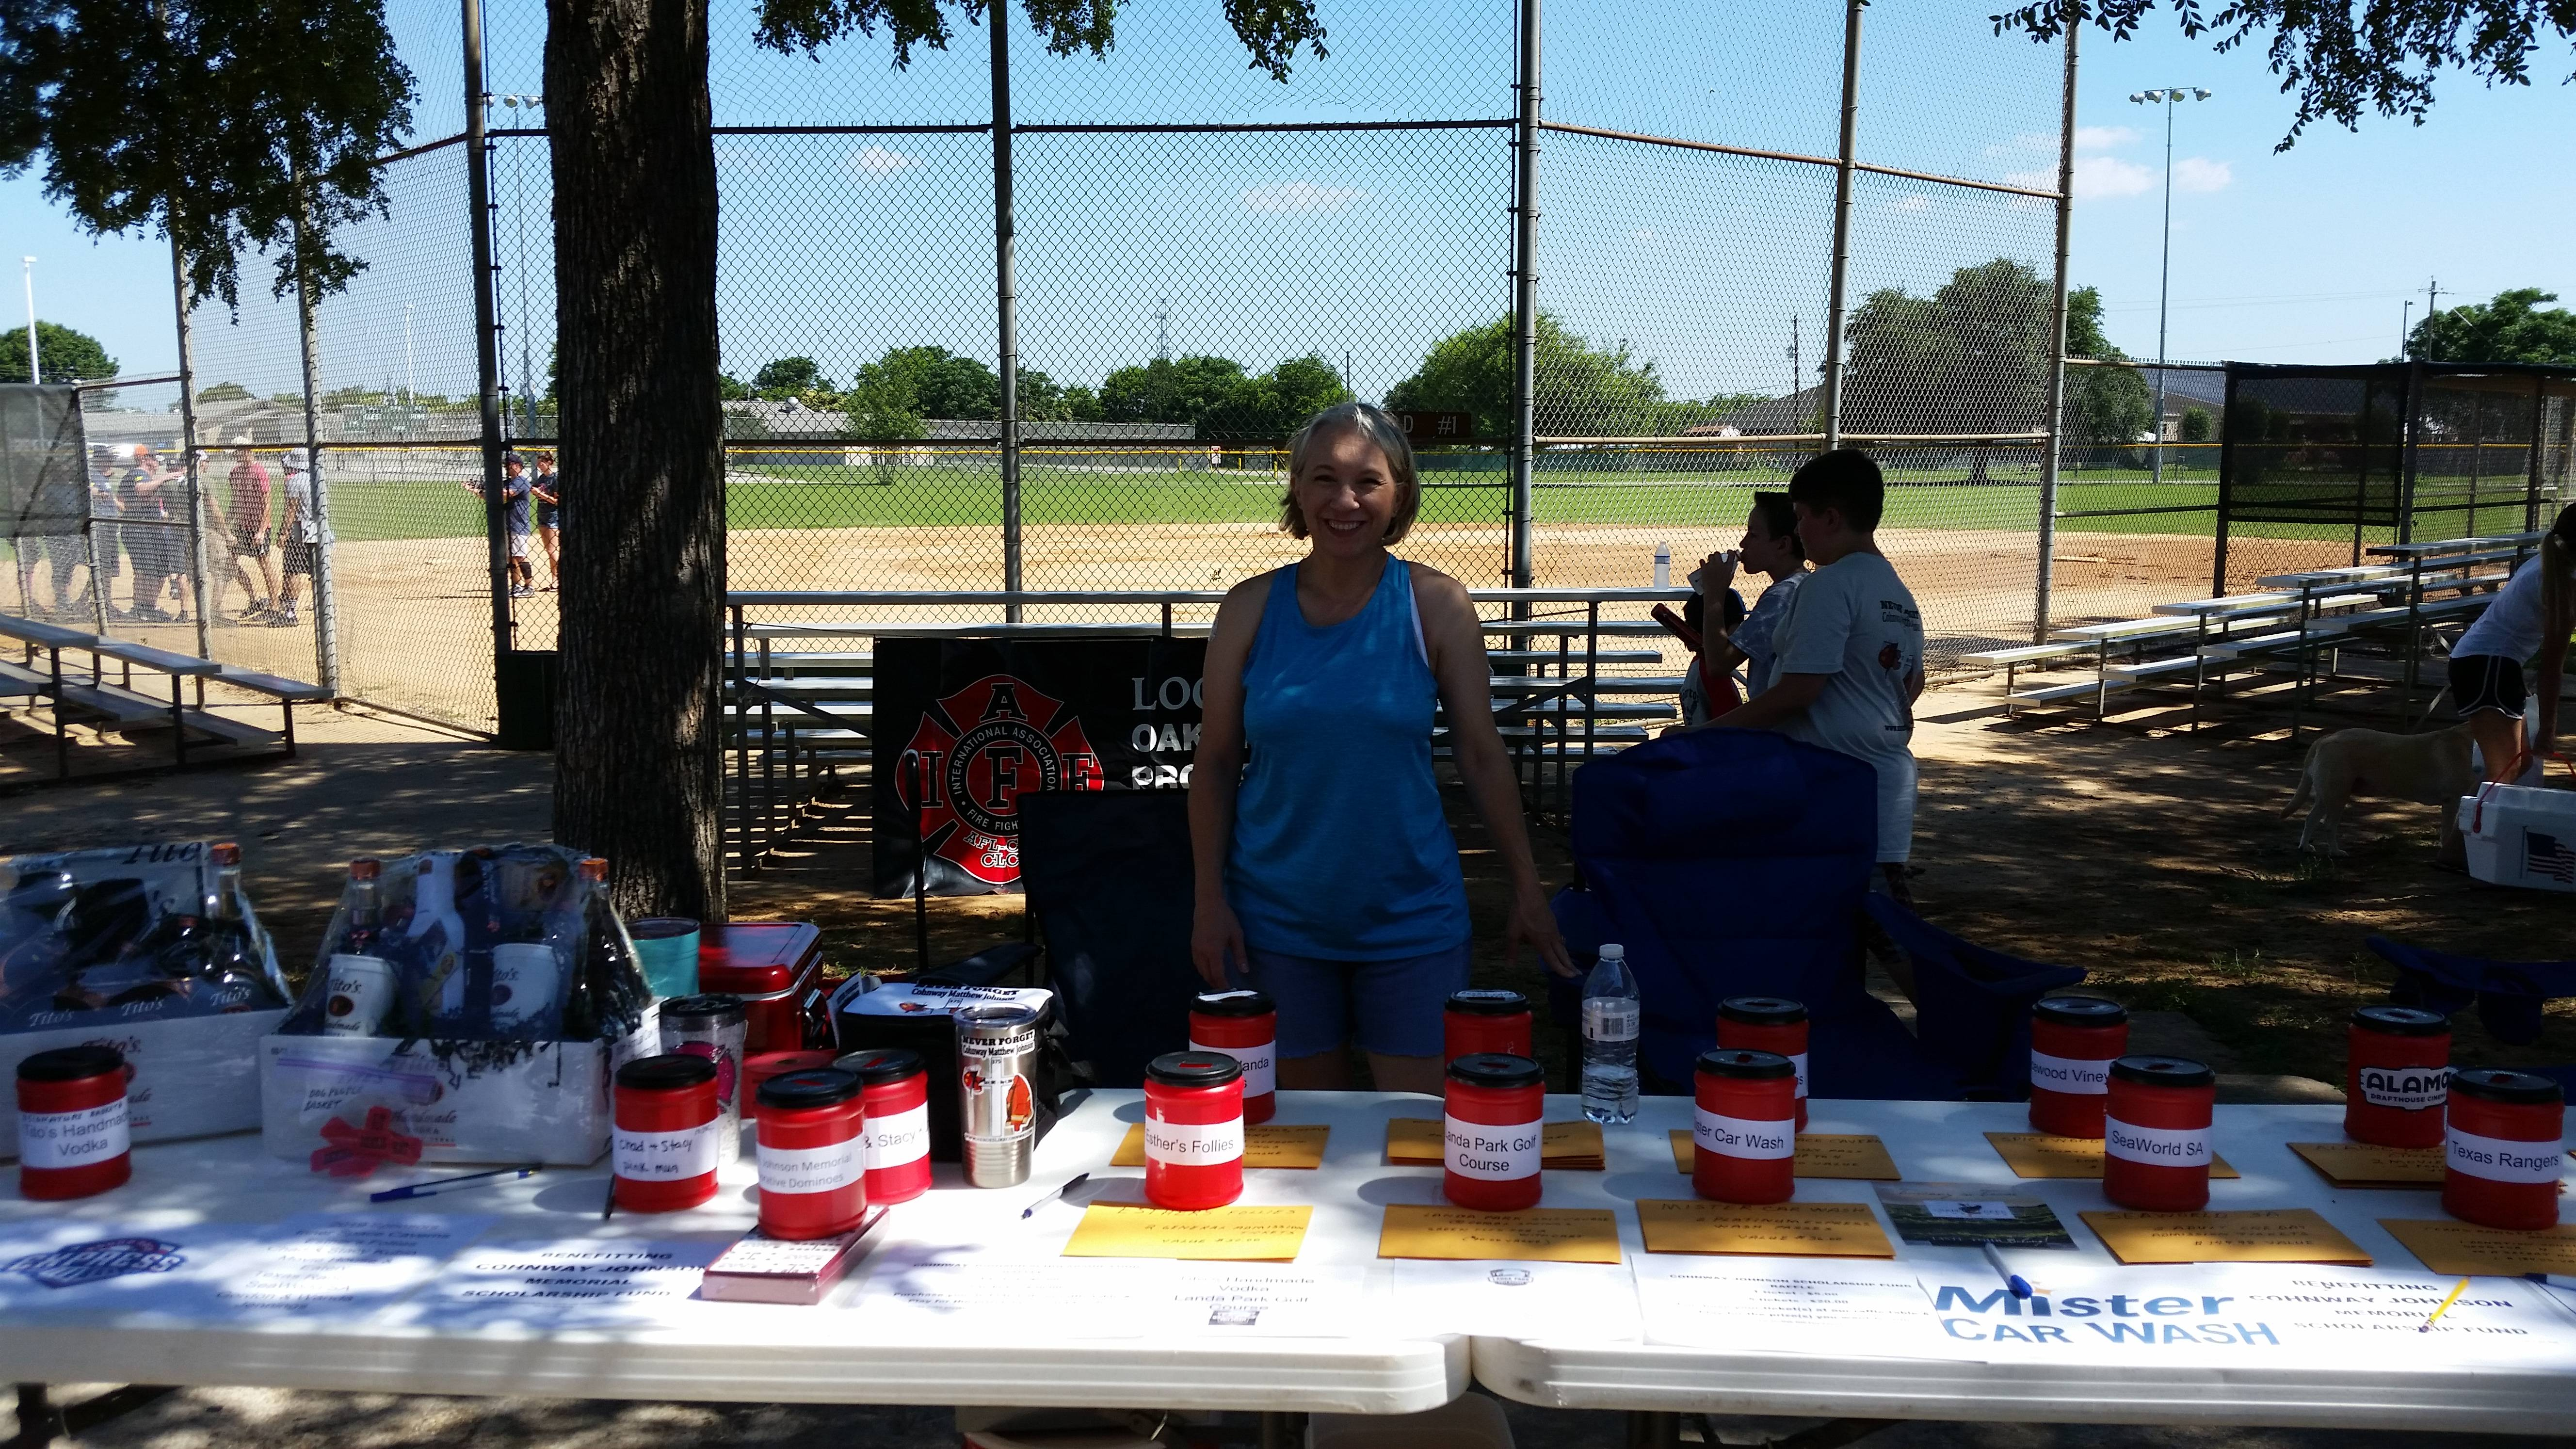 Amy Russell, wife of Mack Russell w/Westlake, manages the raffle table